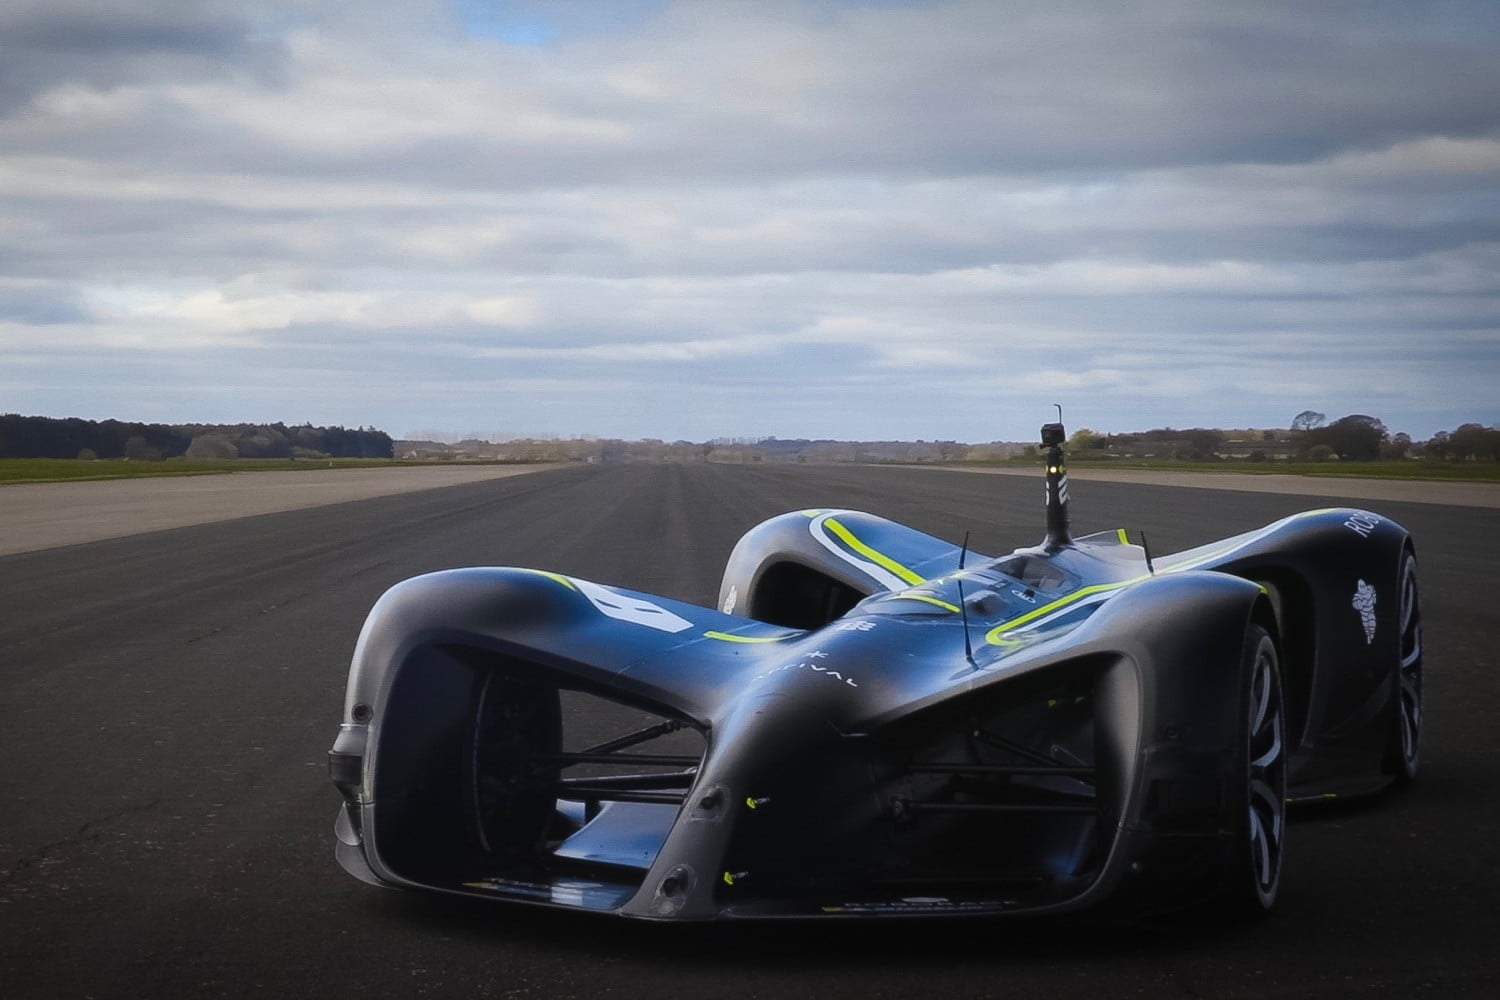 Fastest Car In The World >> This Missile On Wheels Is The World S Fastest Self Driving